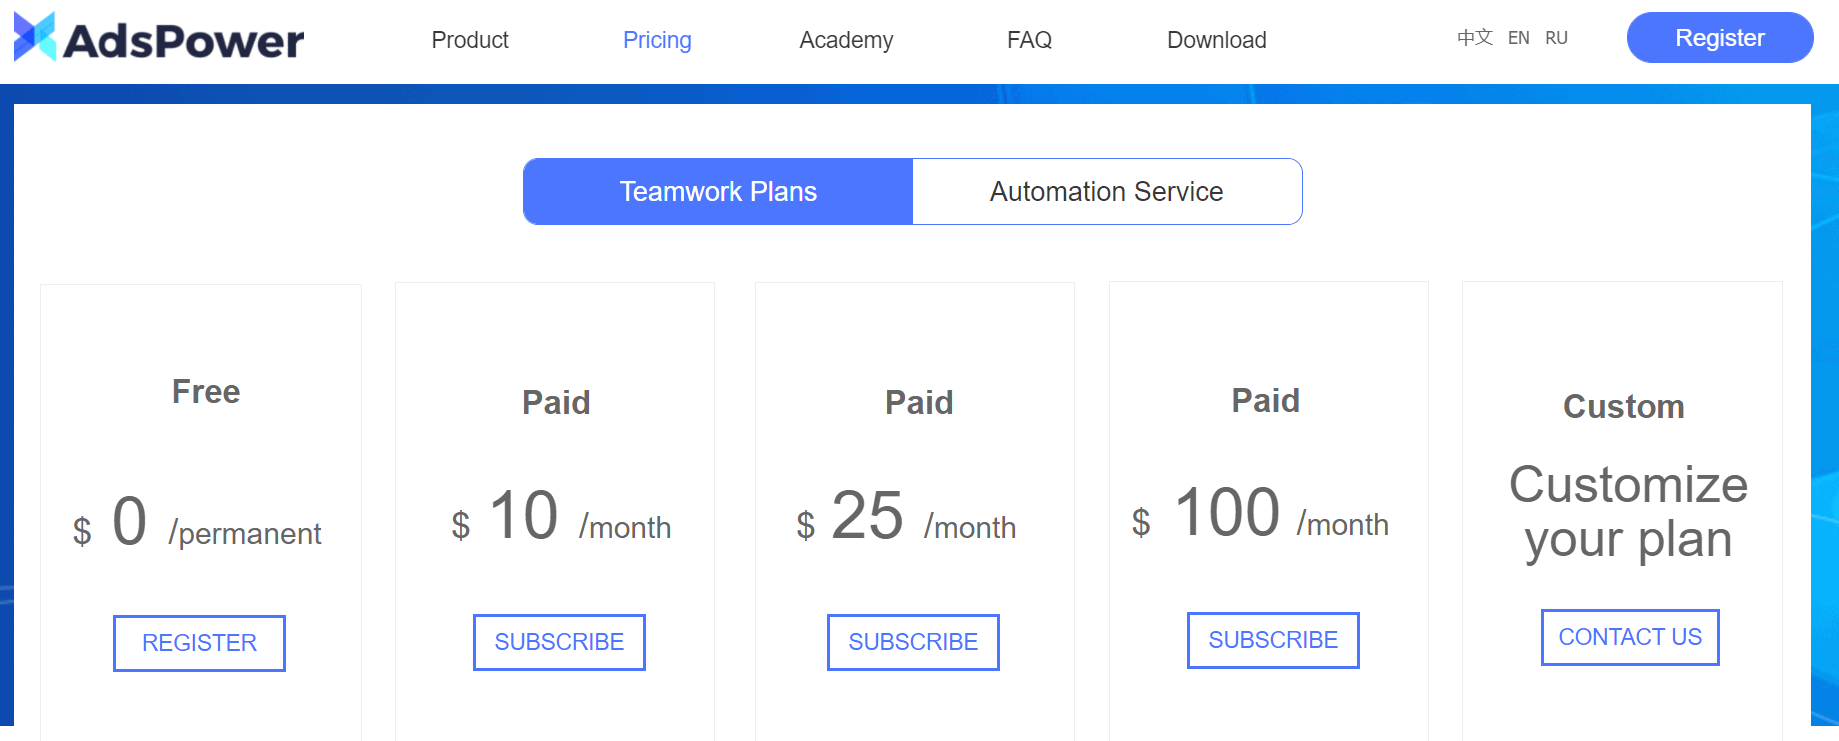 adspower pricing plans